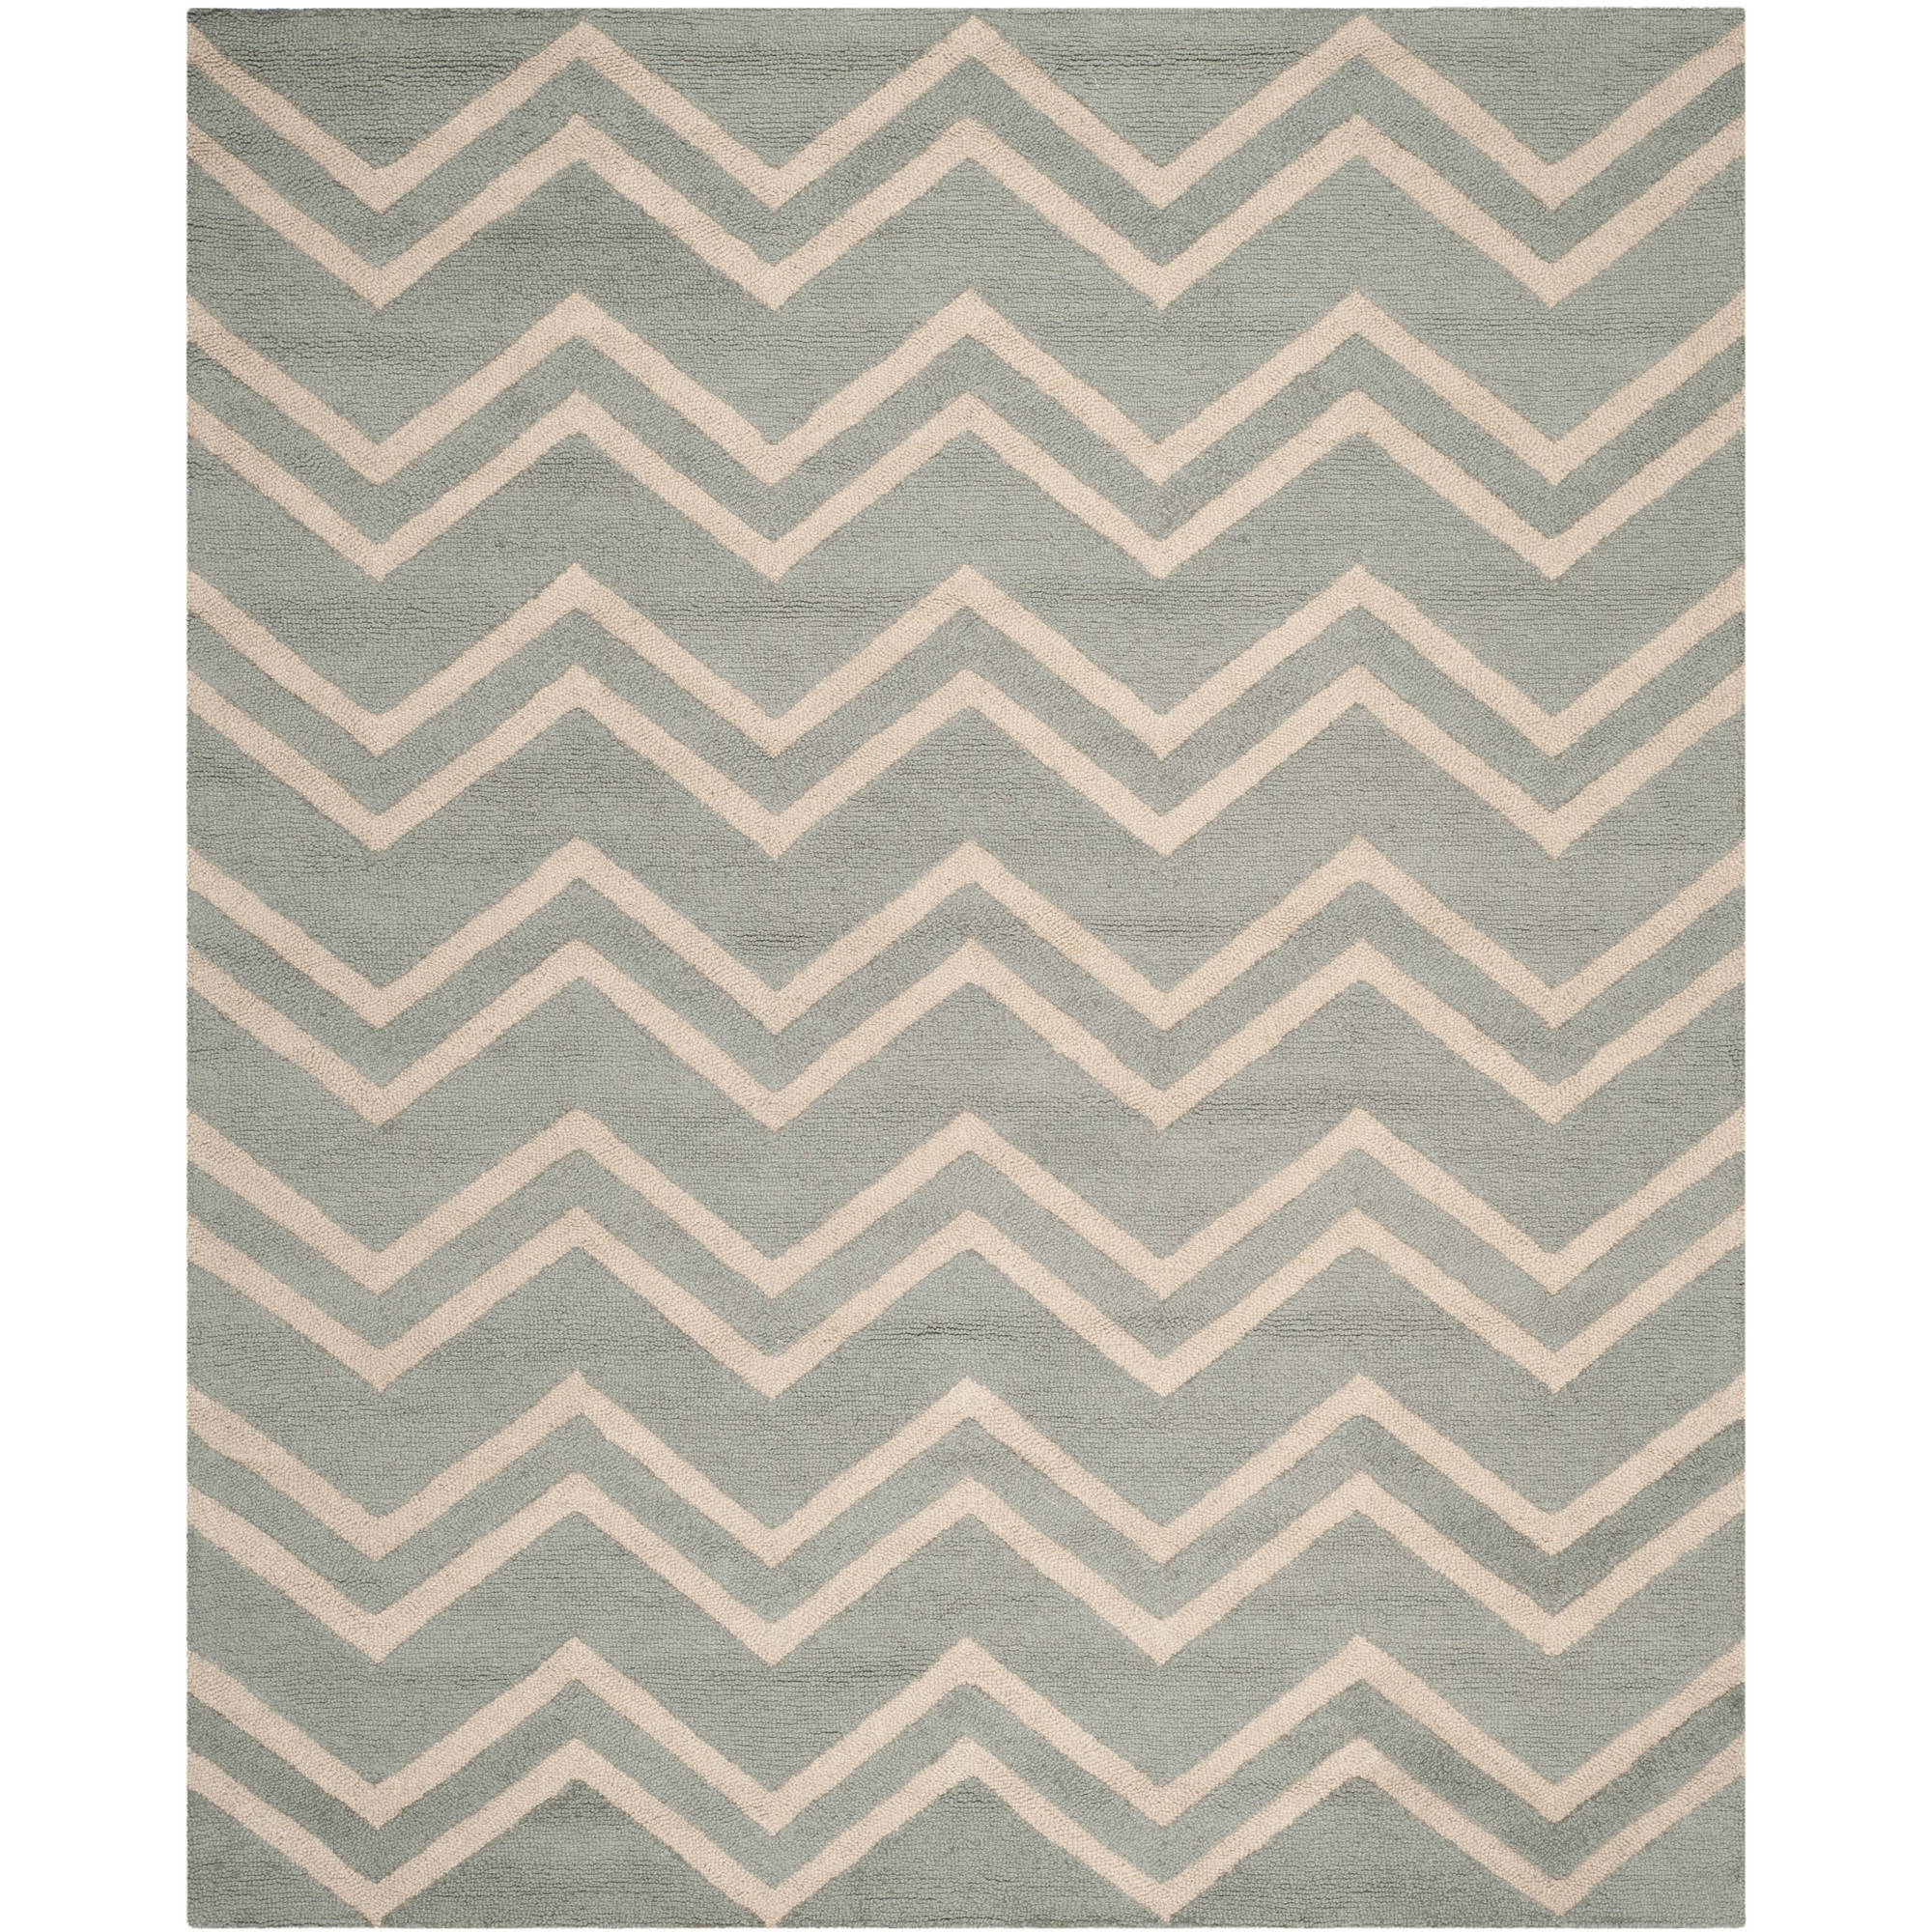 Safavieh Cambridge Joanna Hand-Tufted Wool Area Rug, Grey/Beige